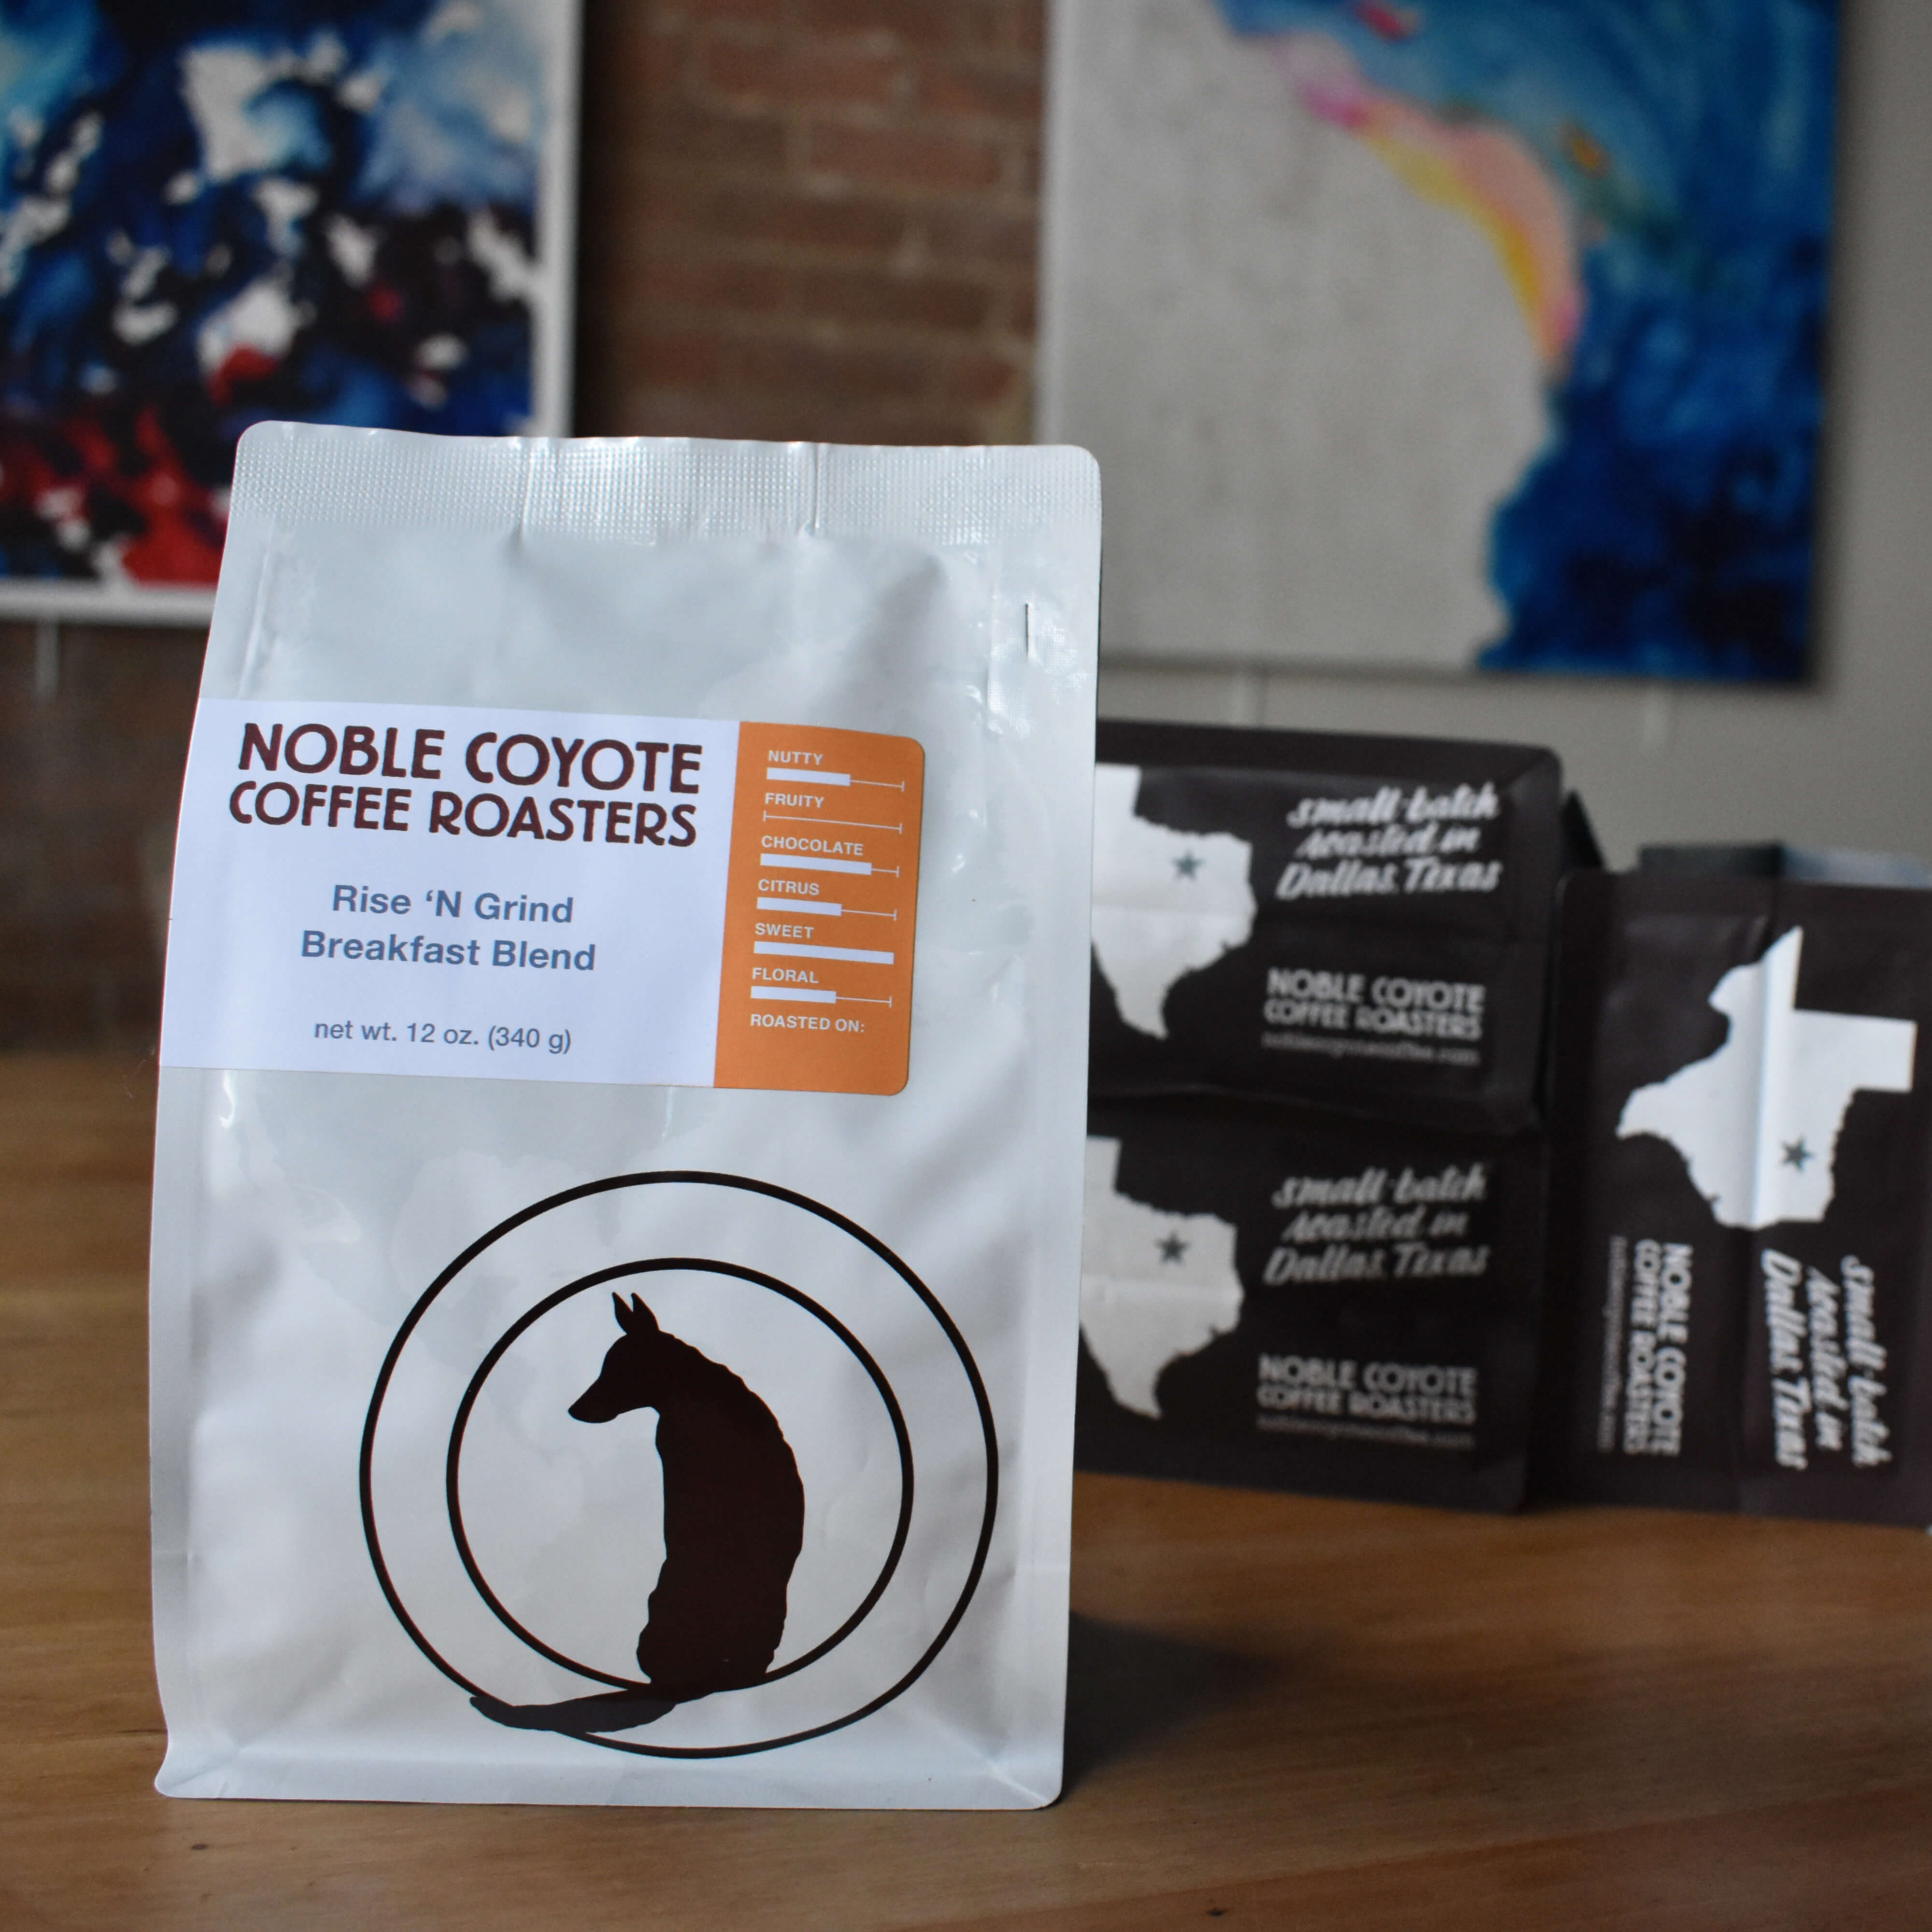 Rise 'n Grind Breakfast Blend from Noble Coyote Coffee Roasters